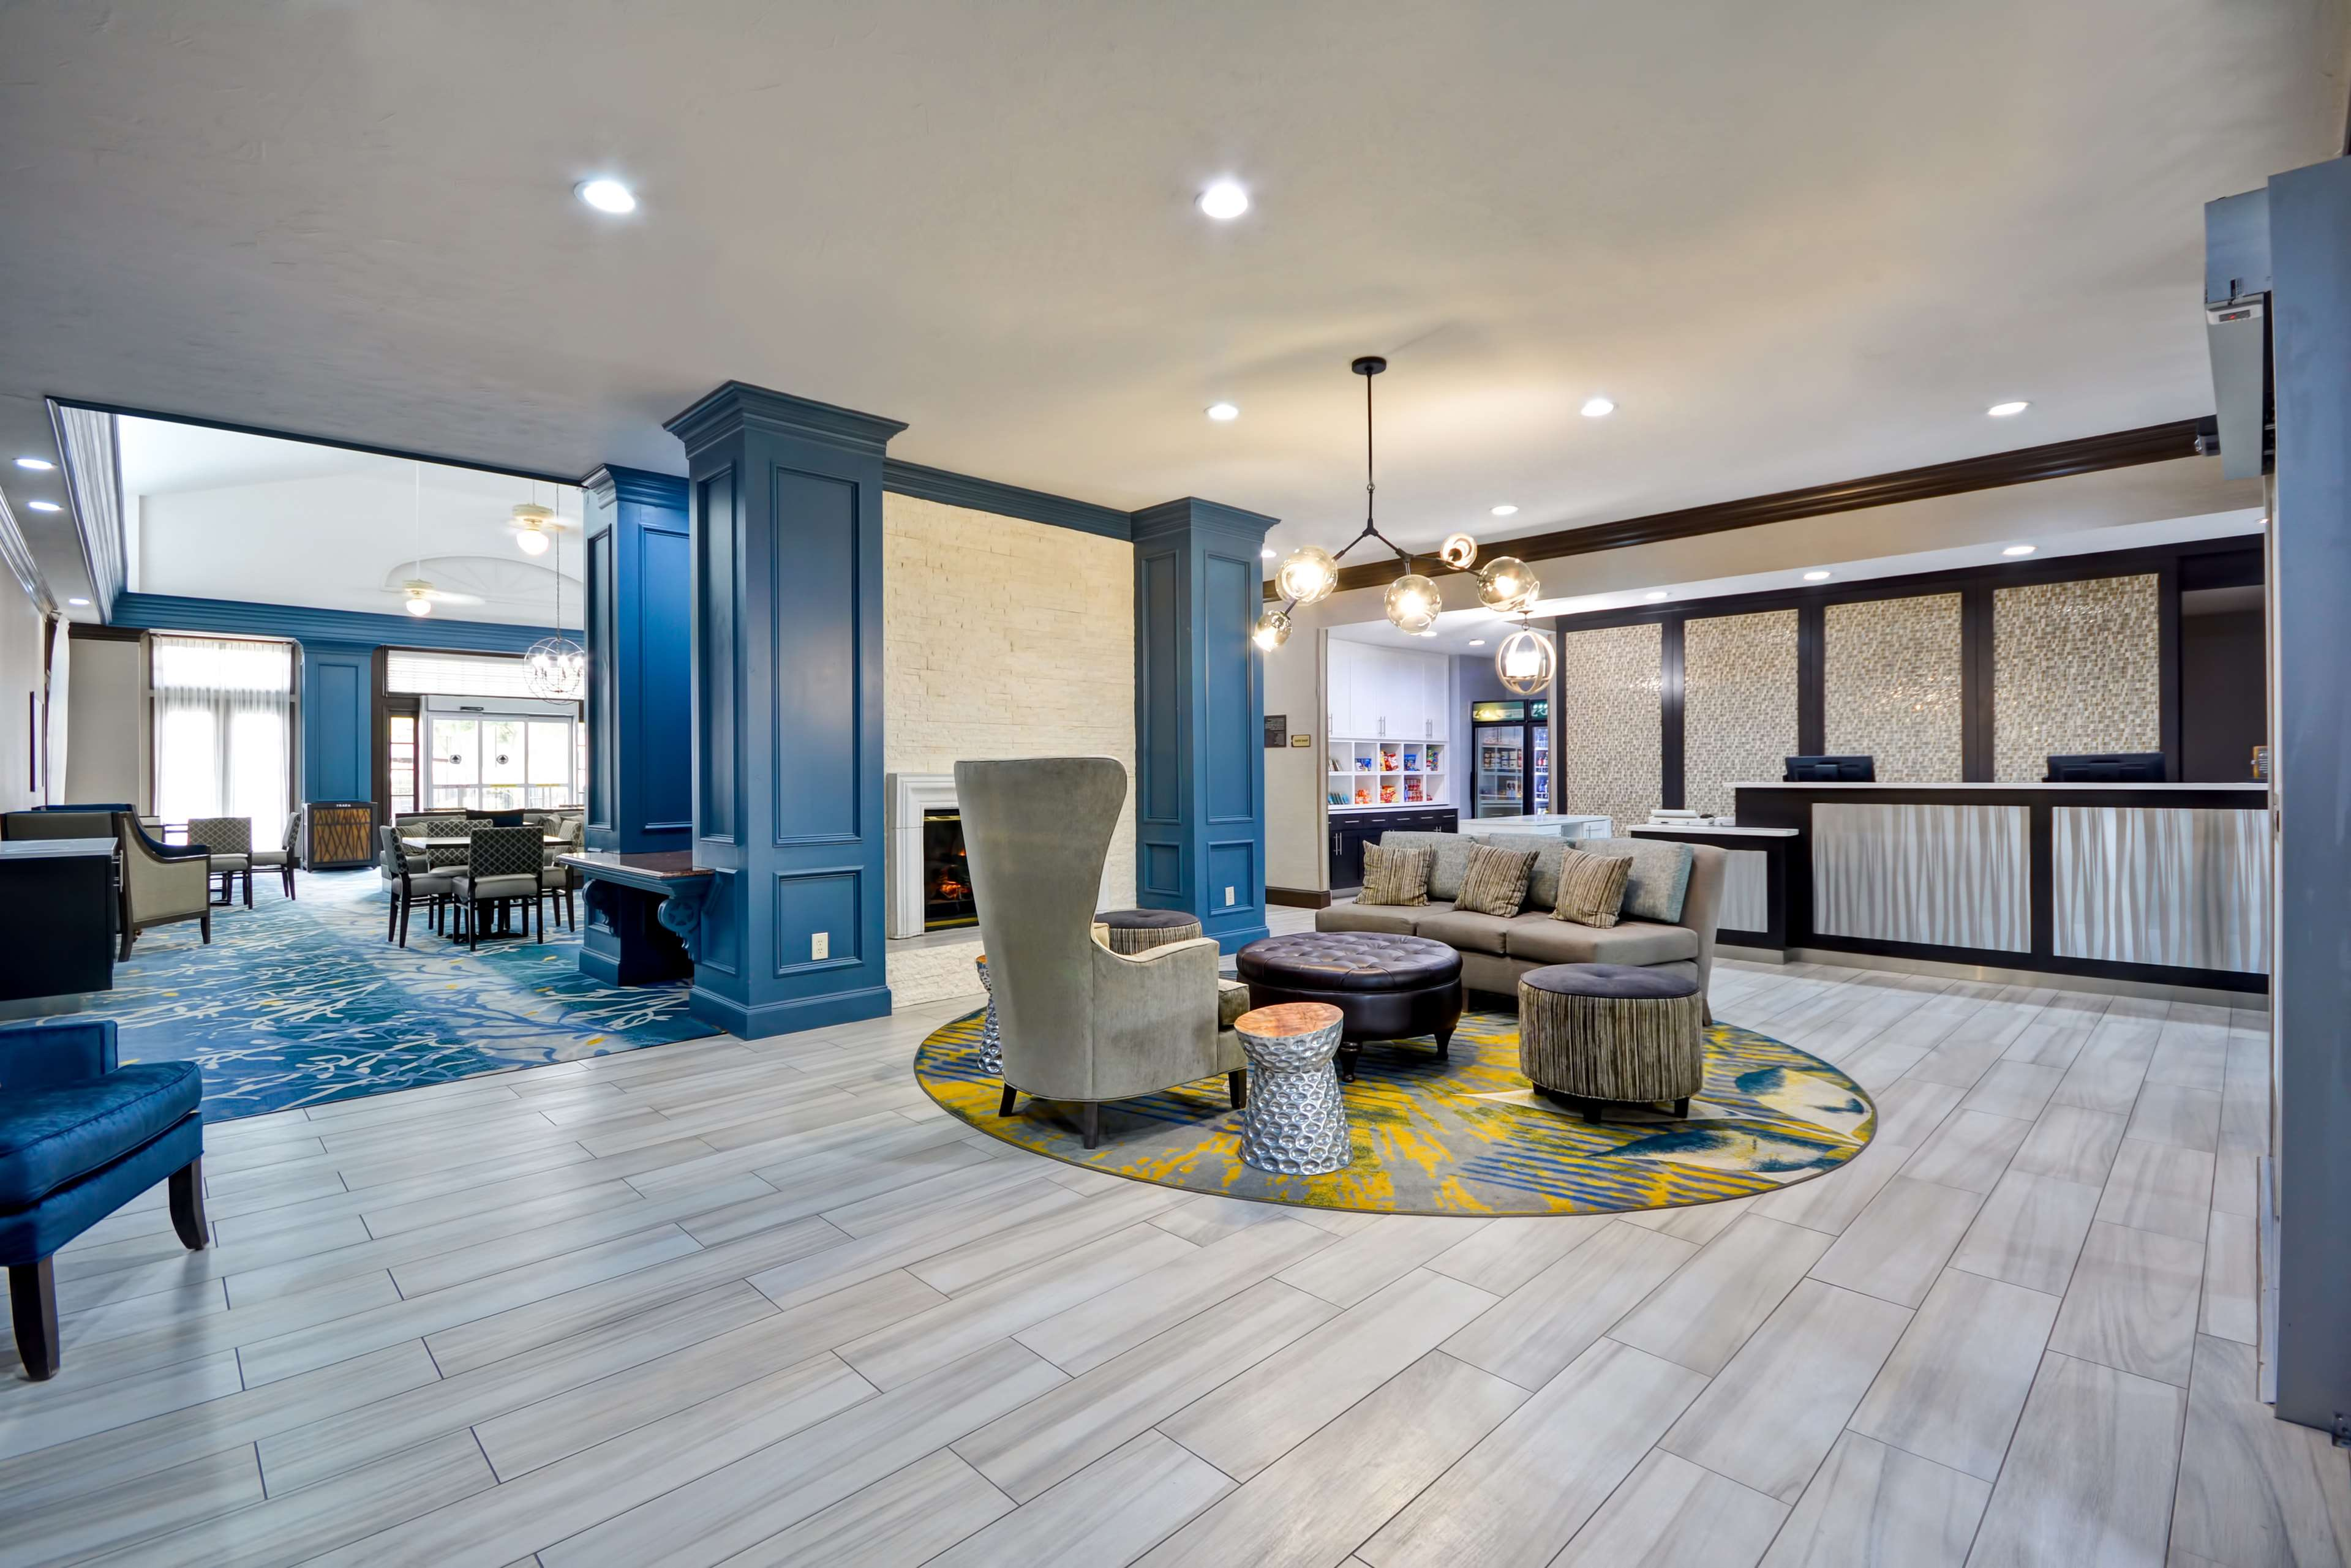 Homewood Suites by Hilton Dallas-Lewisville image 4